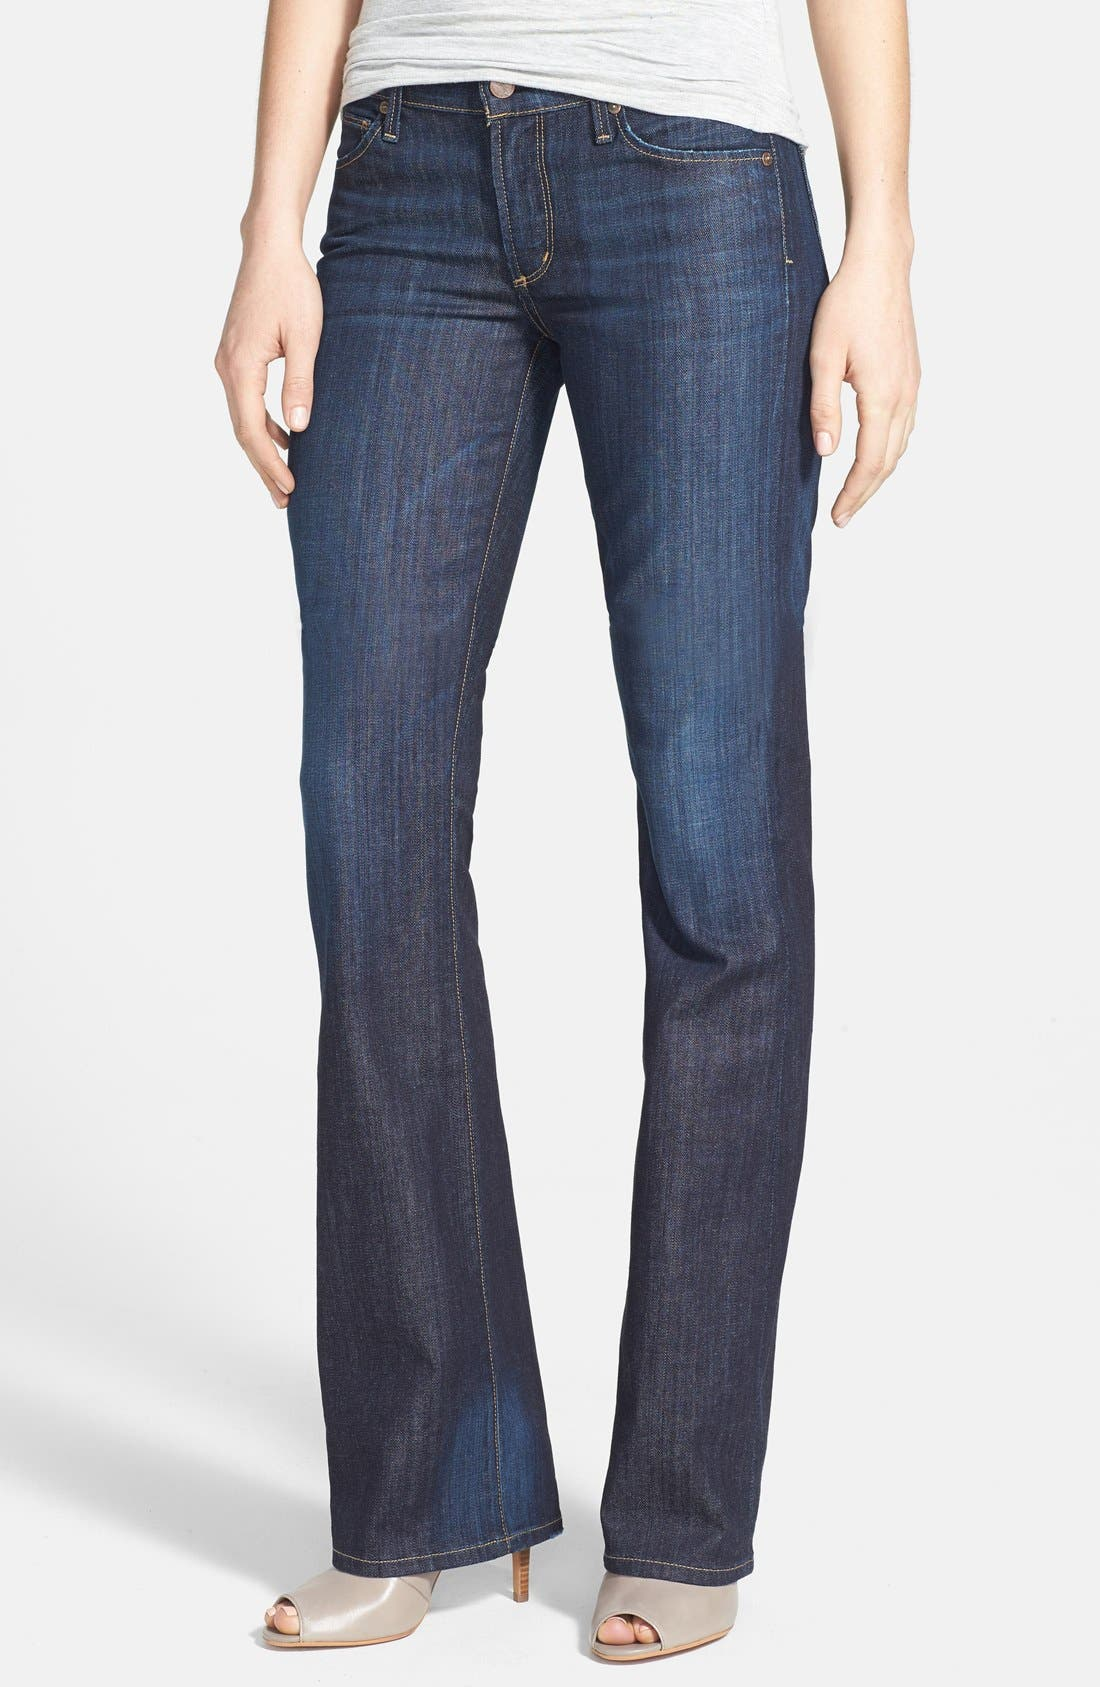 Main Image - Citizens of Humanity 'Kelly' Bootcut Stretch Jeans (New Pacific)